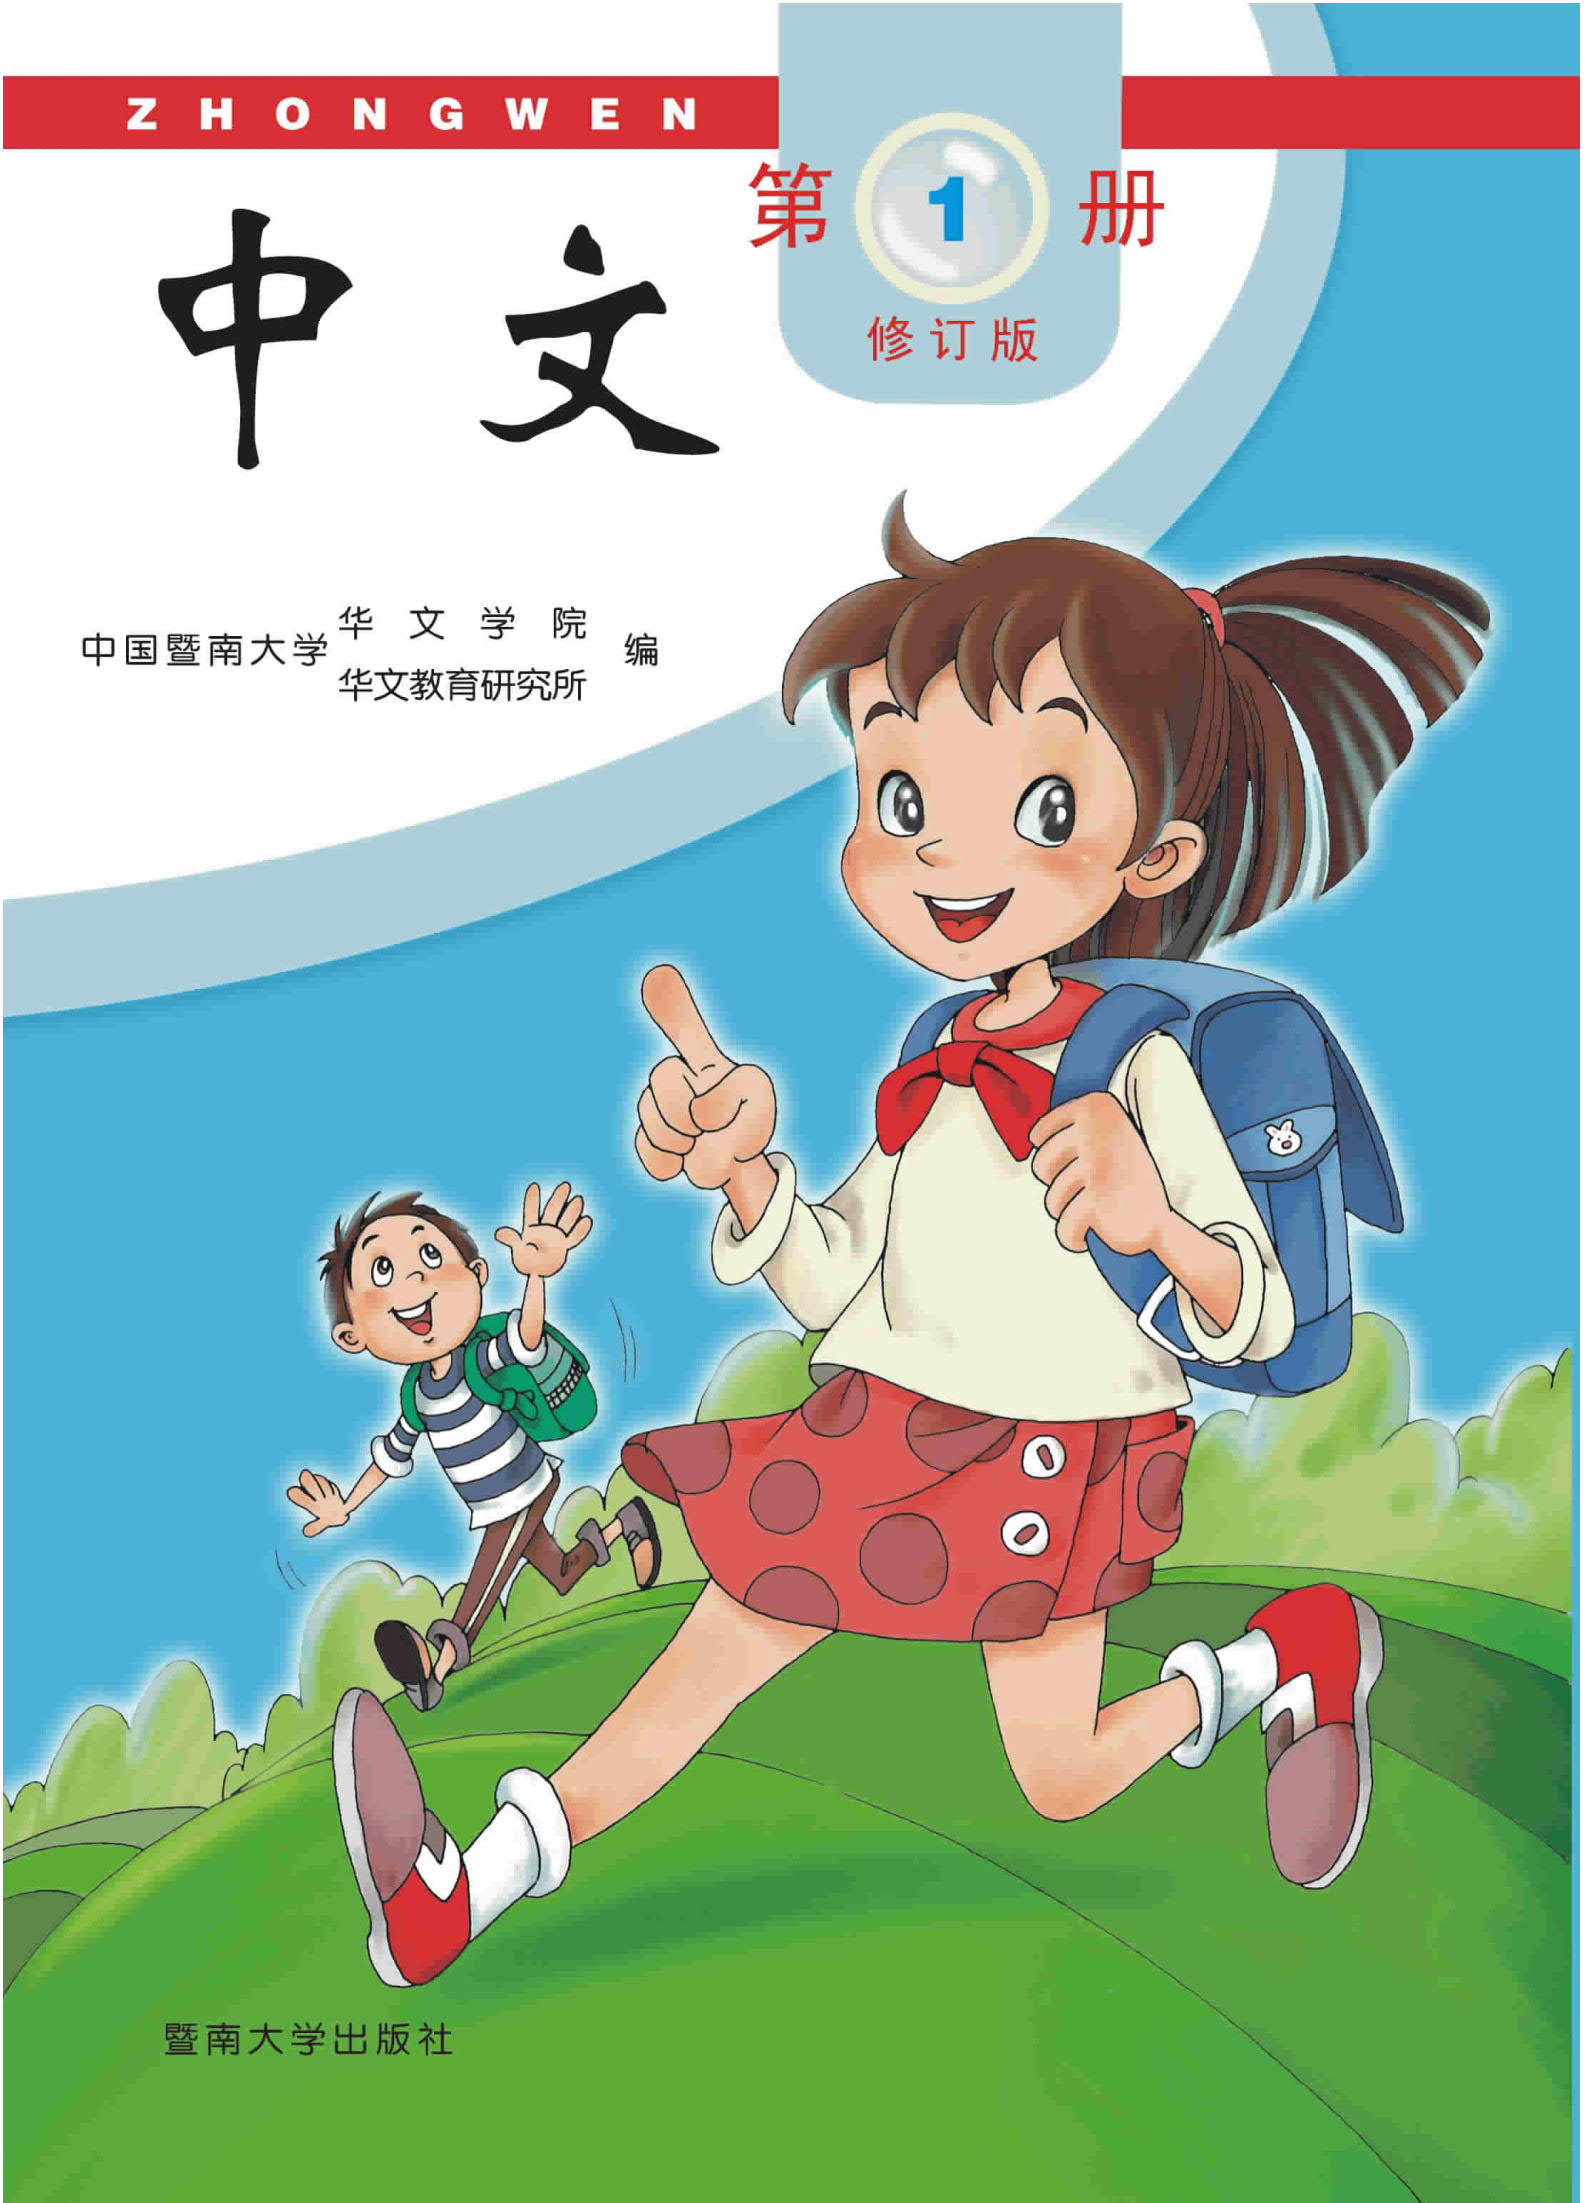 Chinese_School_Image[1255]